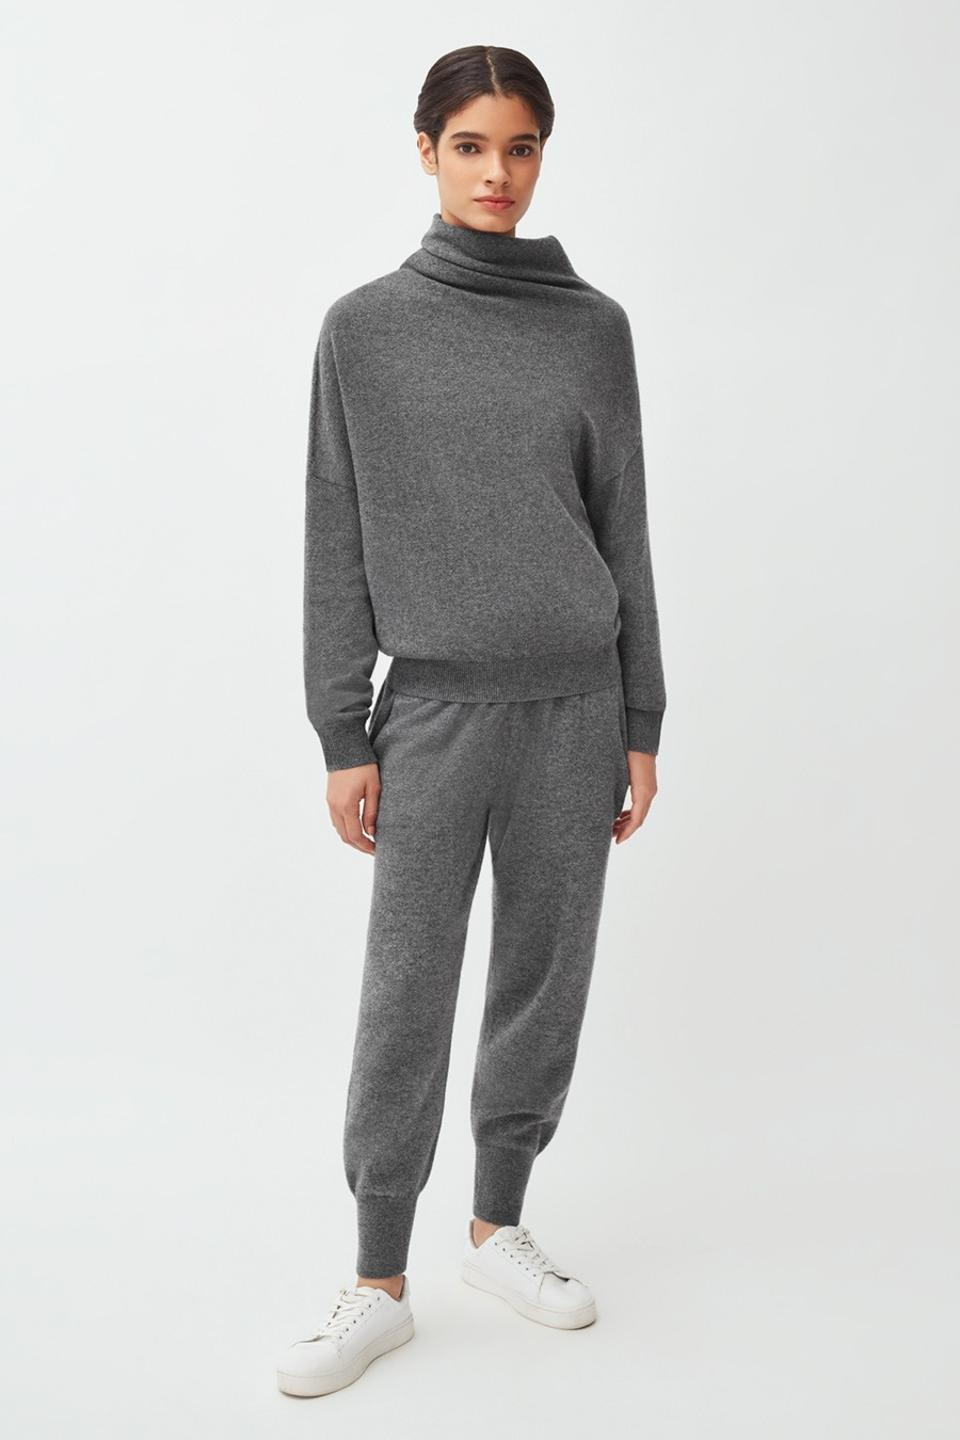 Charcoal cashmere set from Cuyana